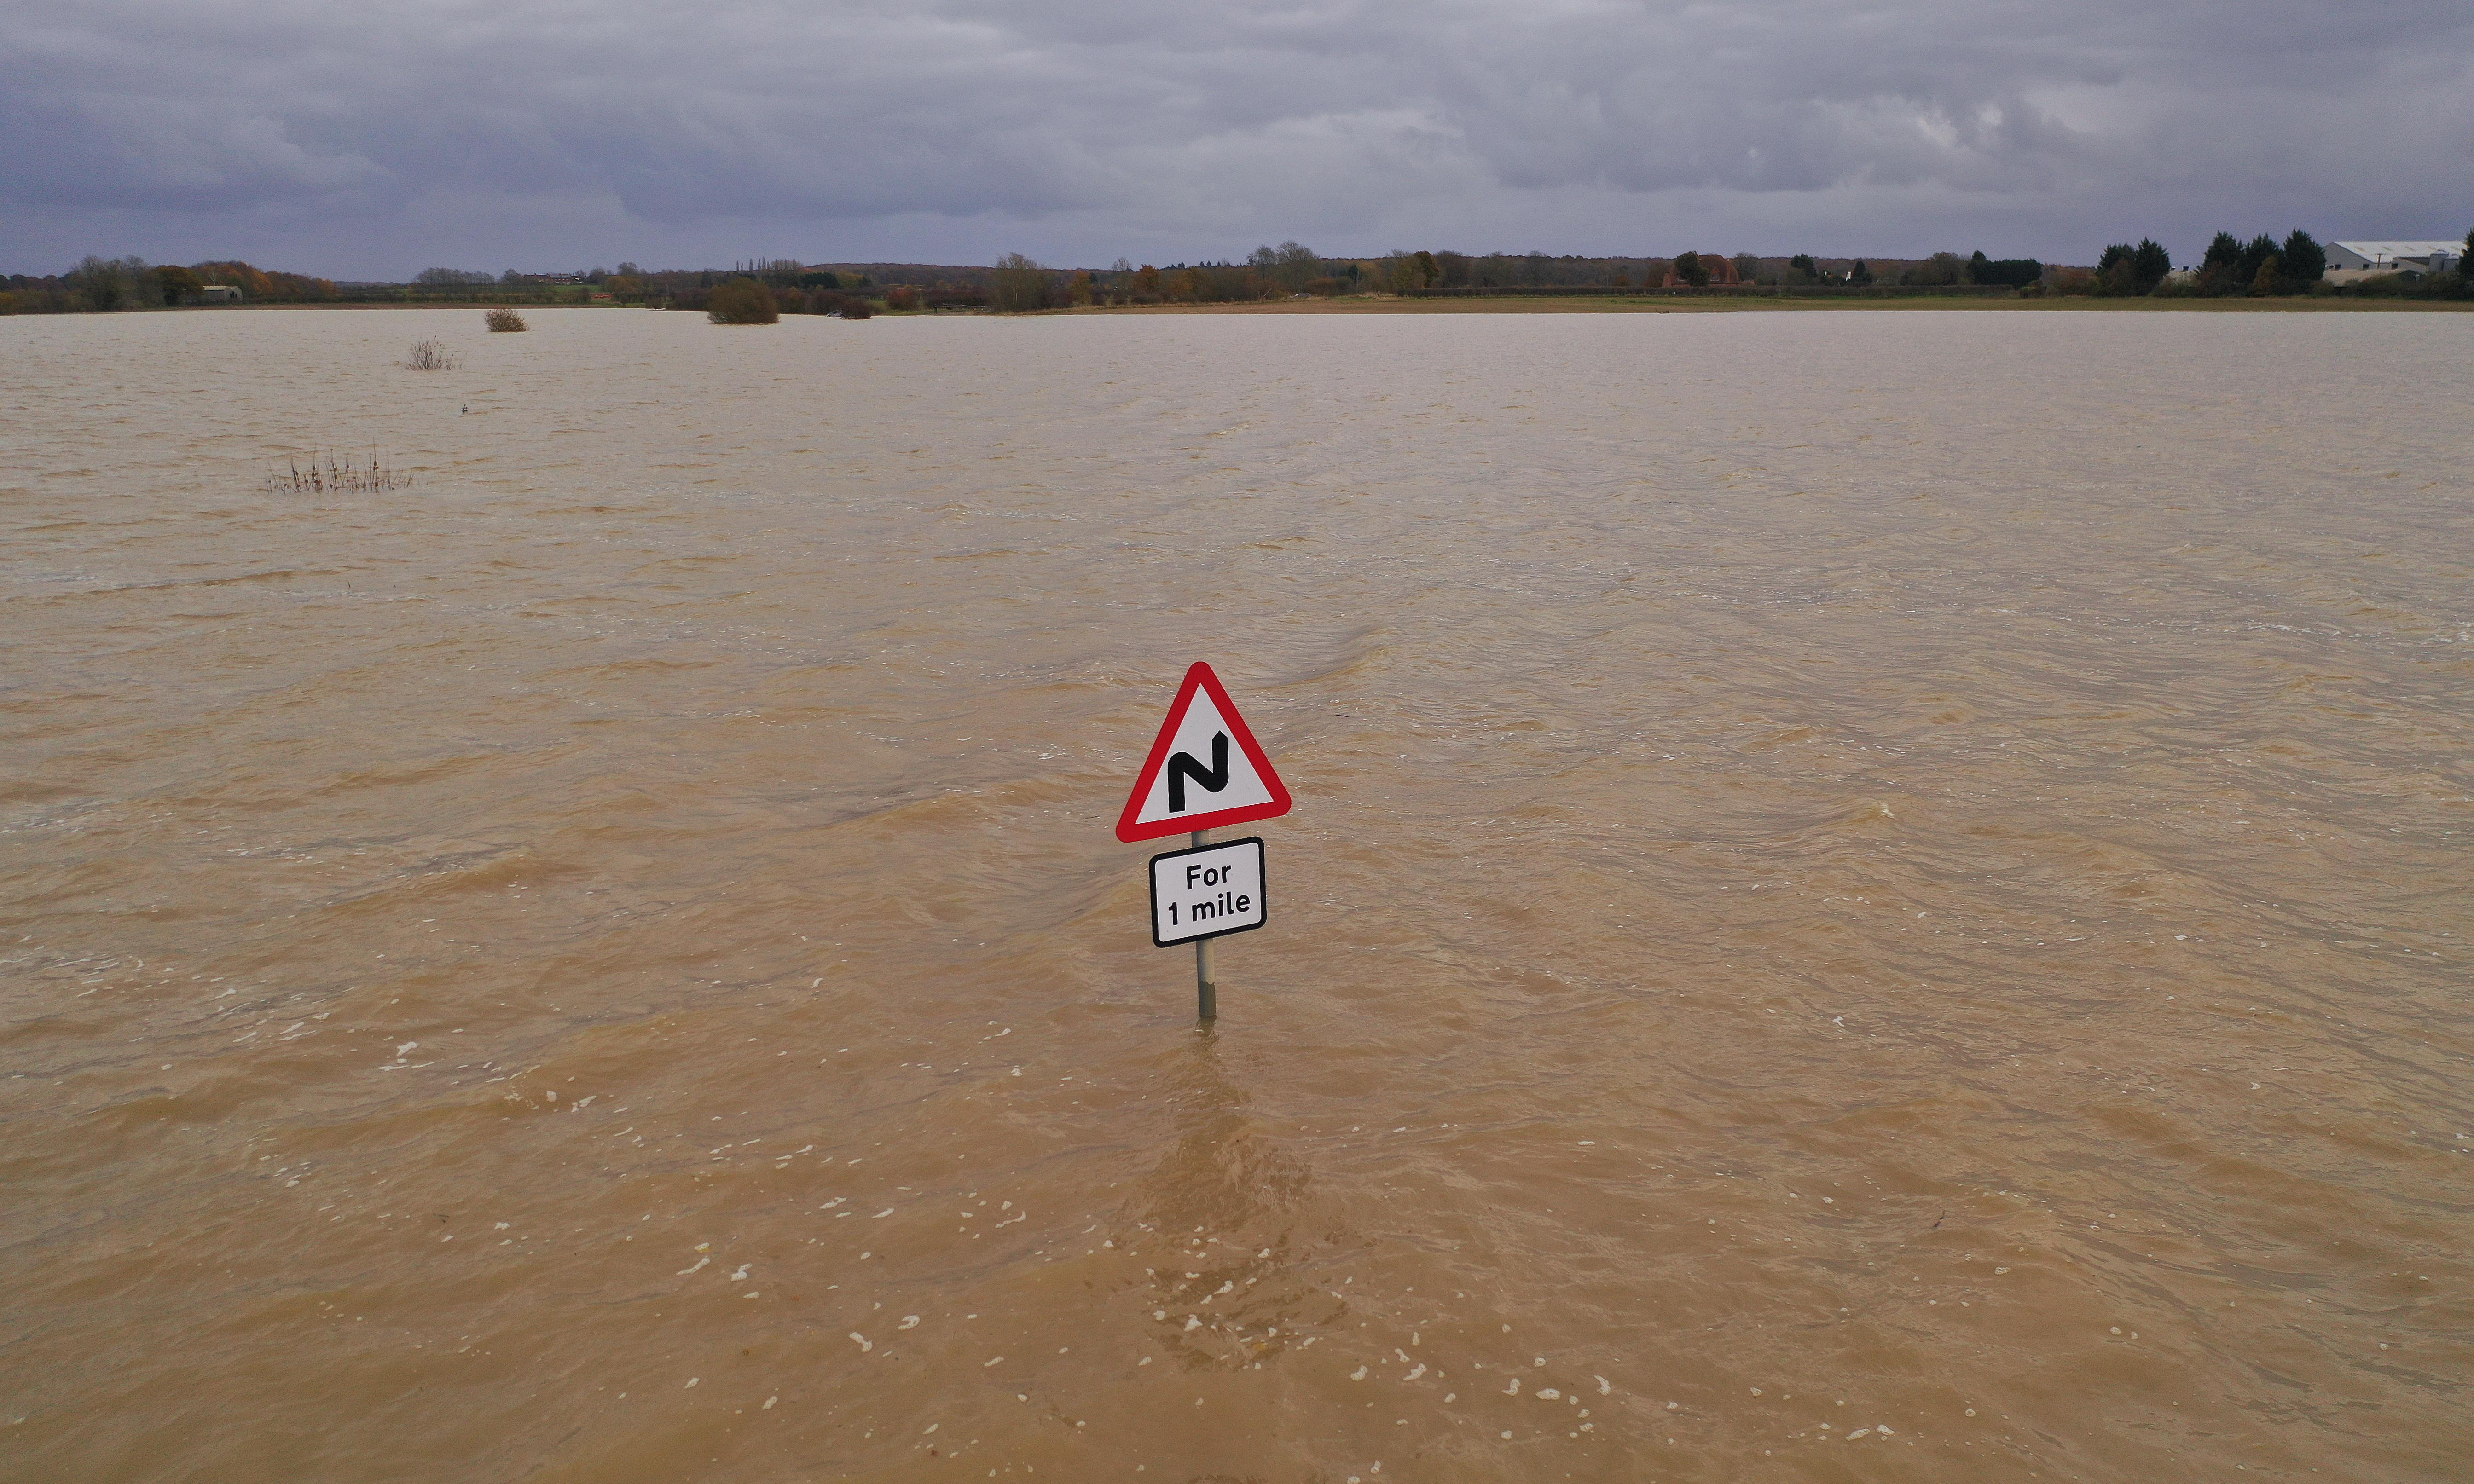 Food prices set to rise in UK as floods ruin crops